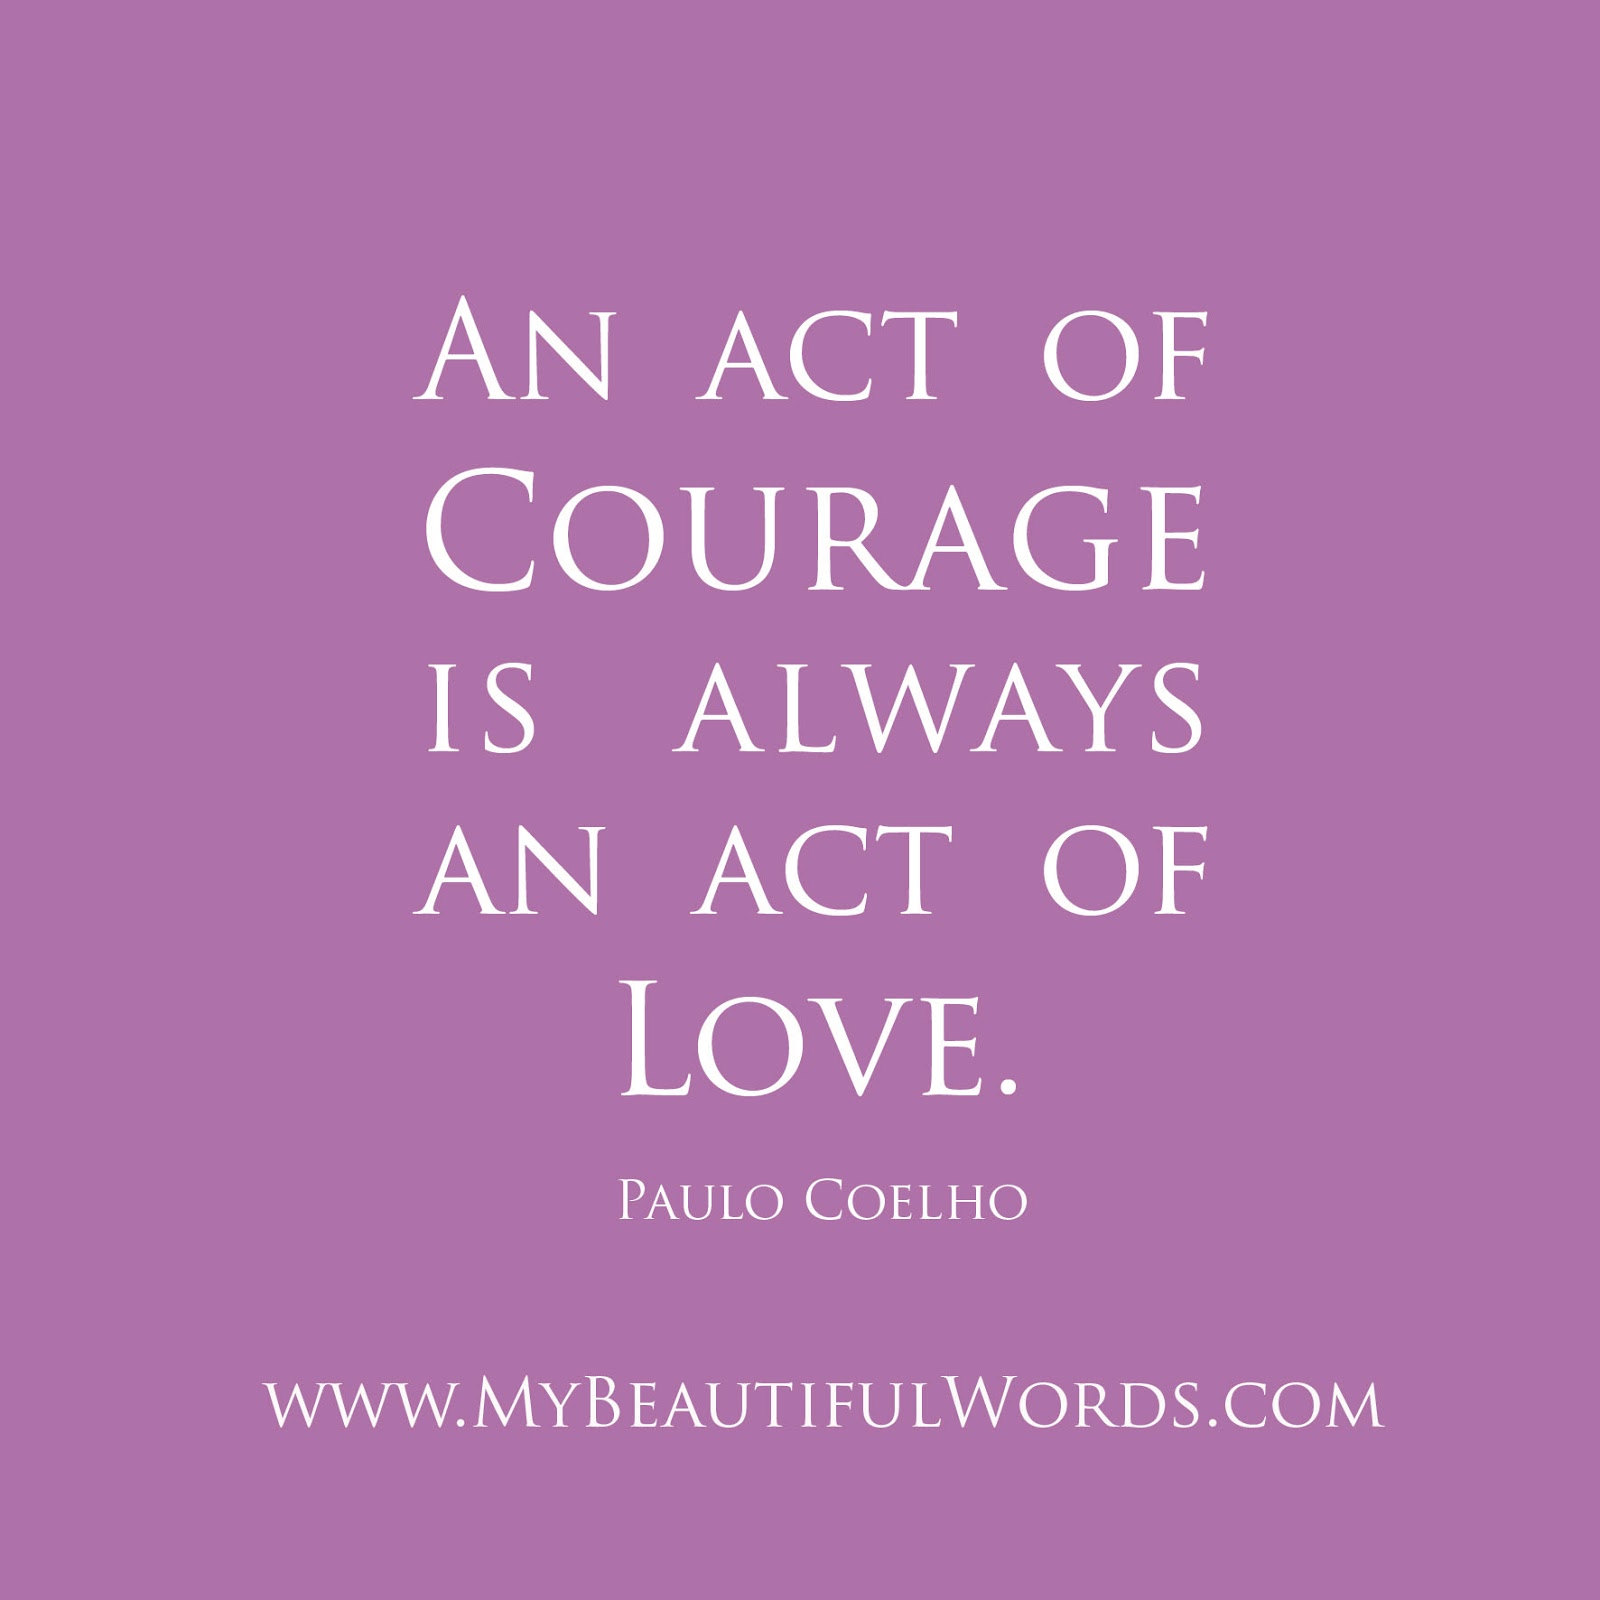 Courage In Love Quotes: Words Of Courage Quotes. QuotesGram